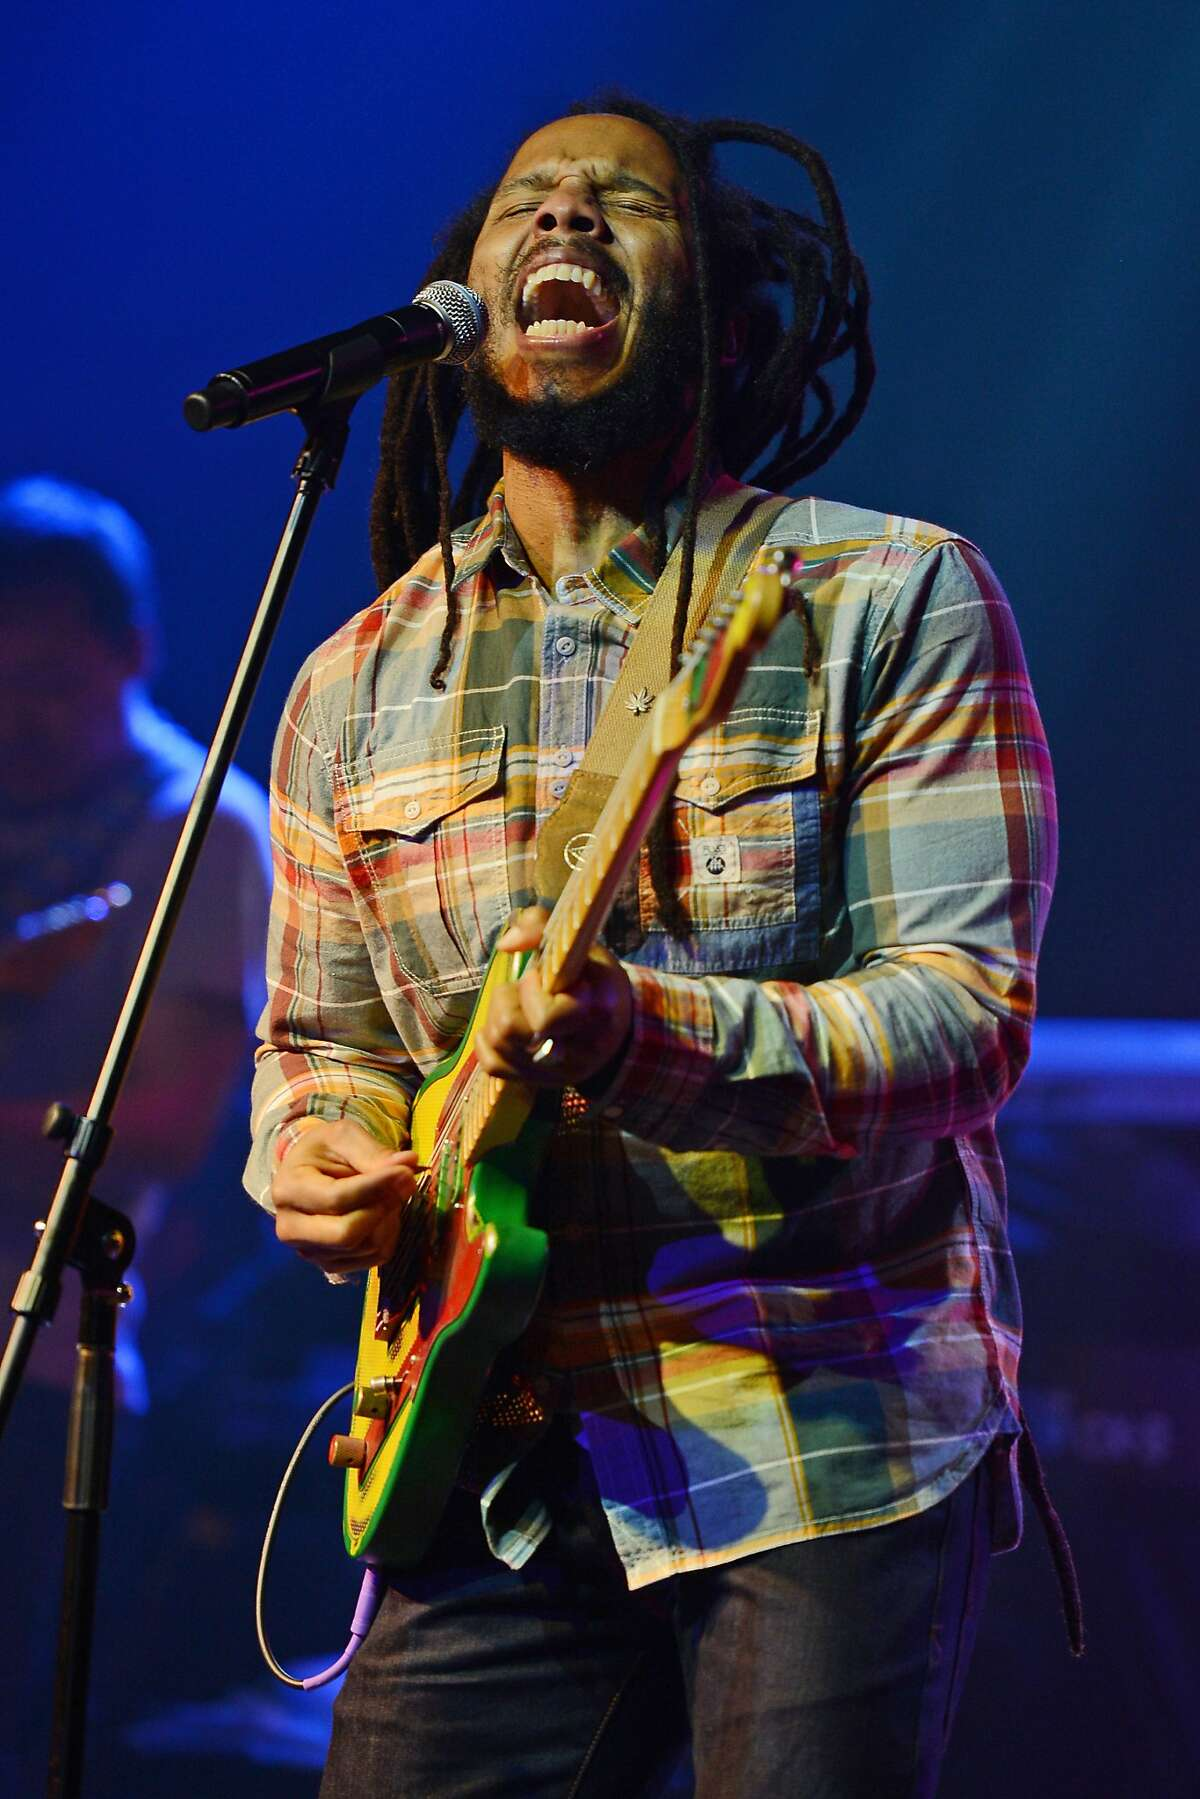 Ziggy Marley performs at Revolution on February 19, 2013 in Fort Lauderdale, Florida.